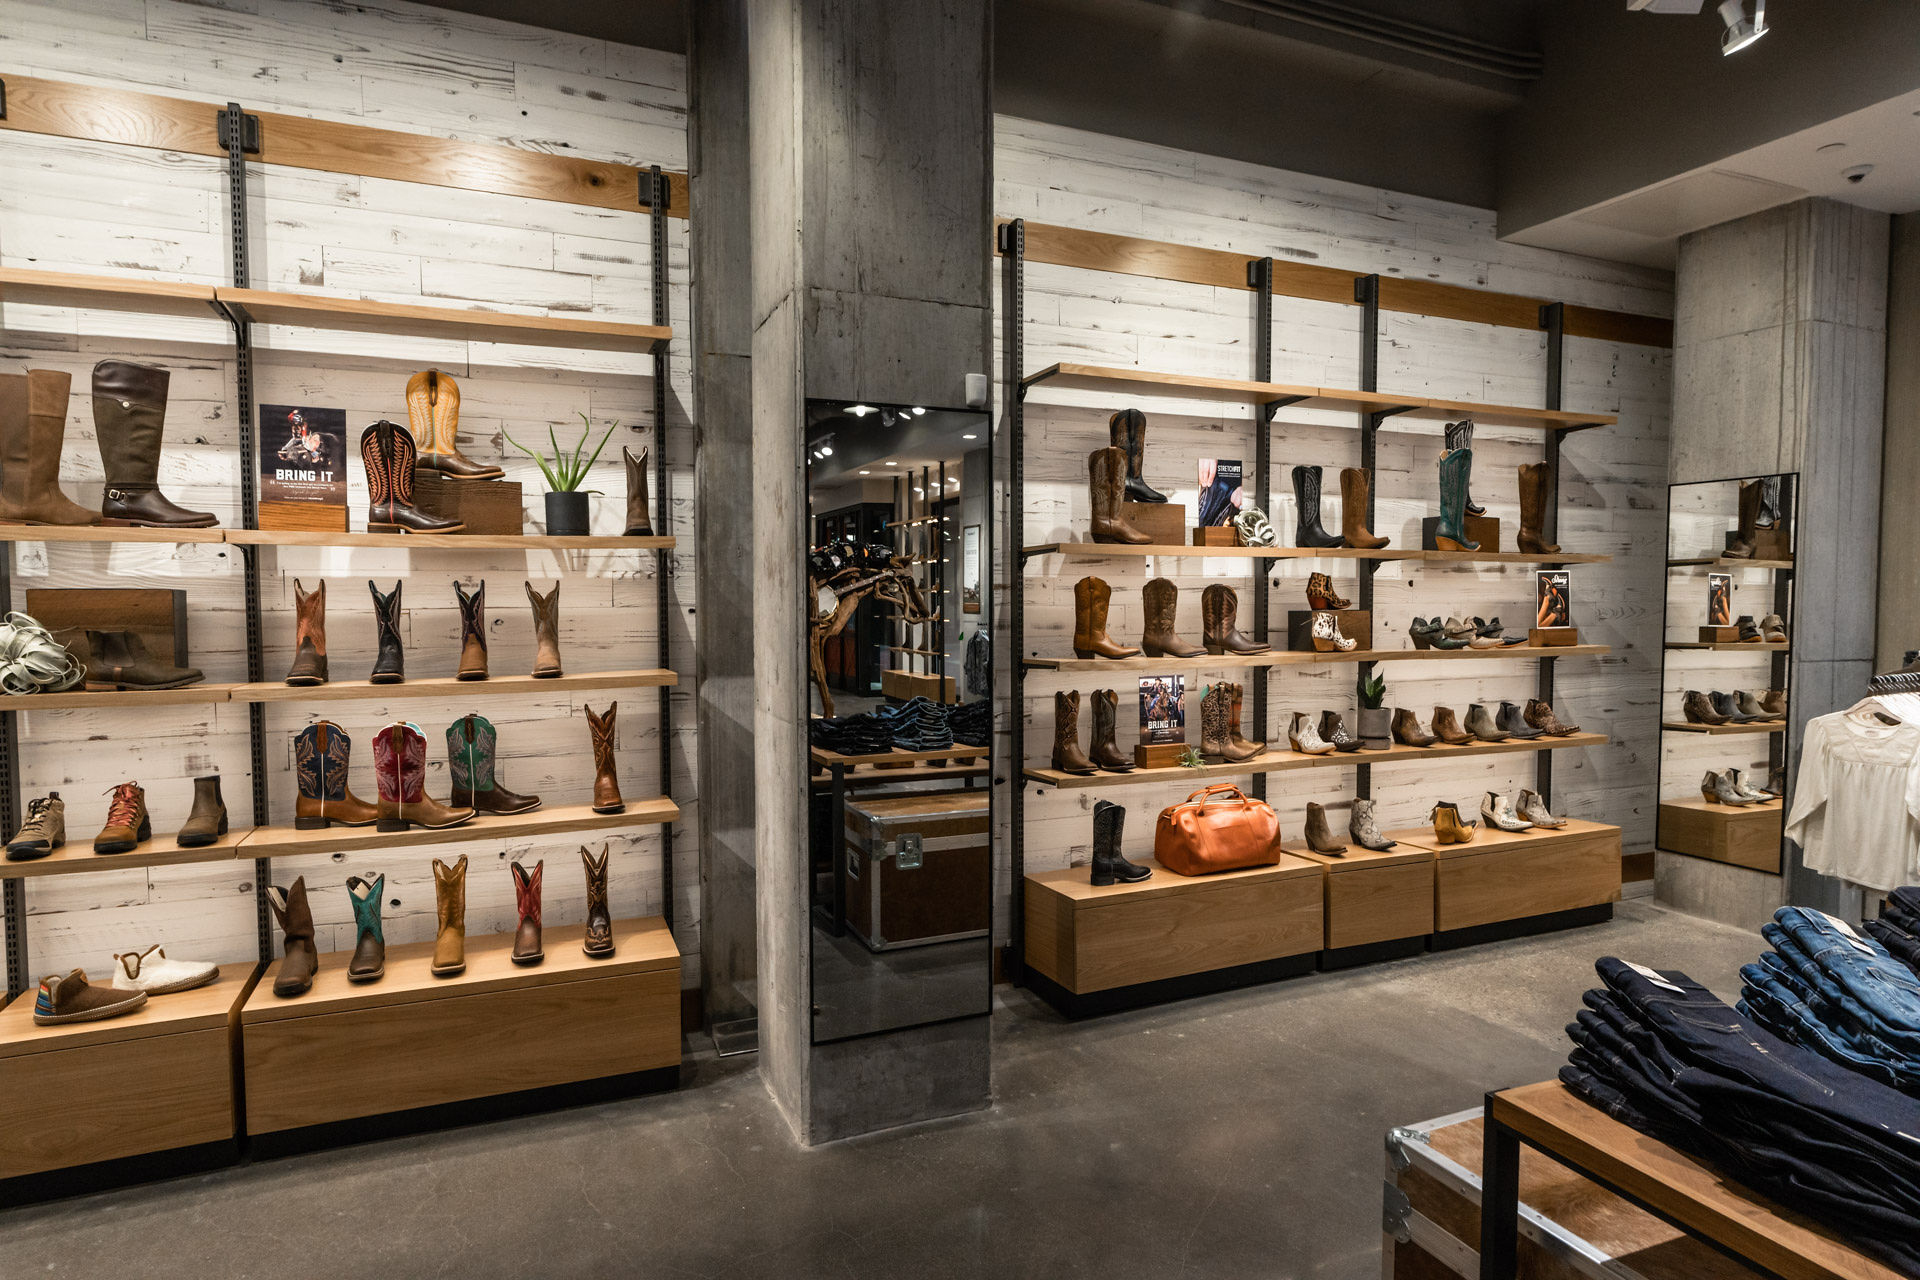 ariat store boot wall and jeans